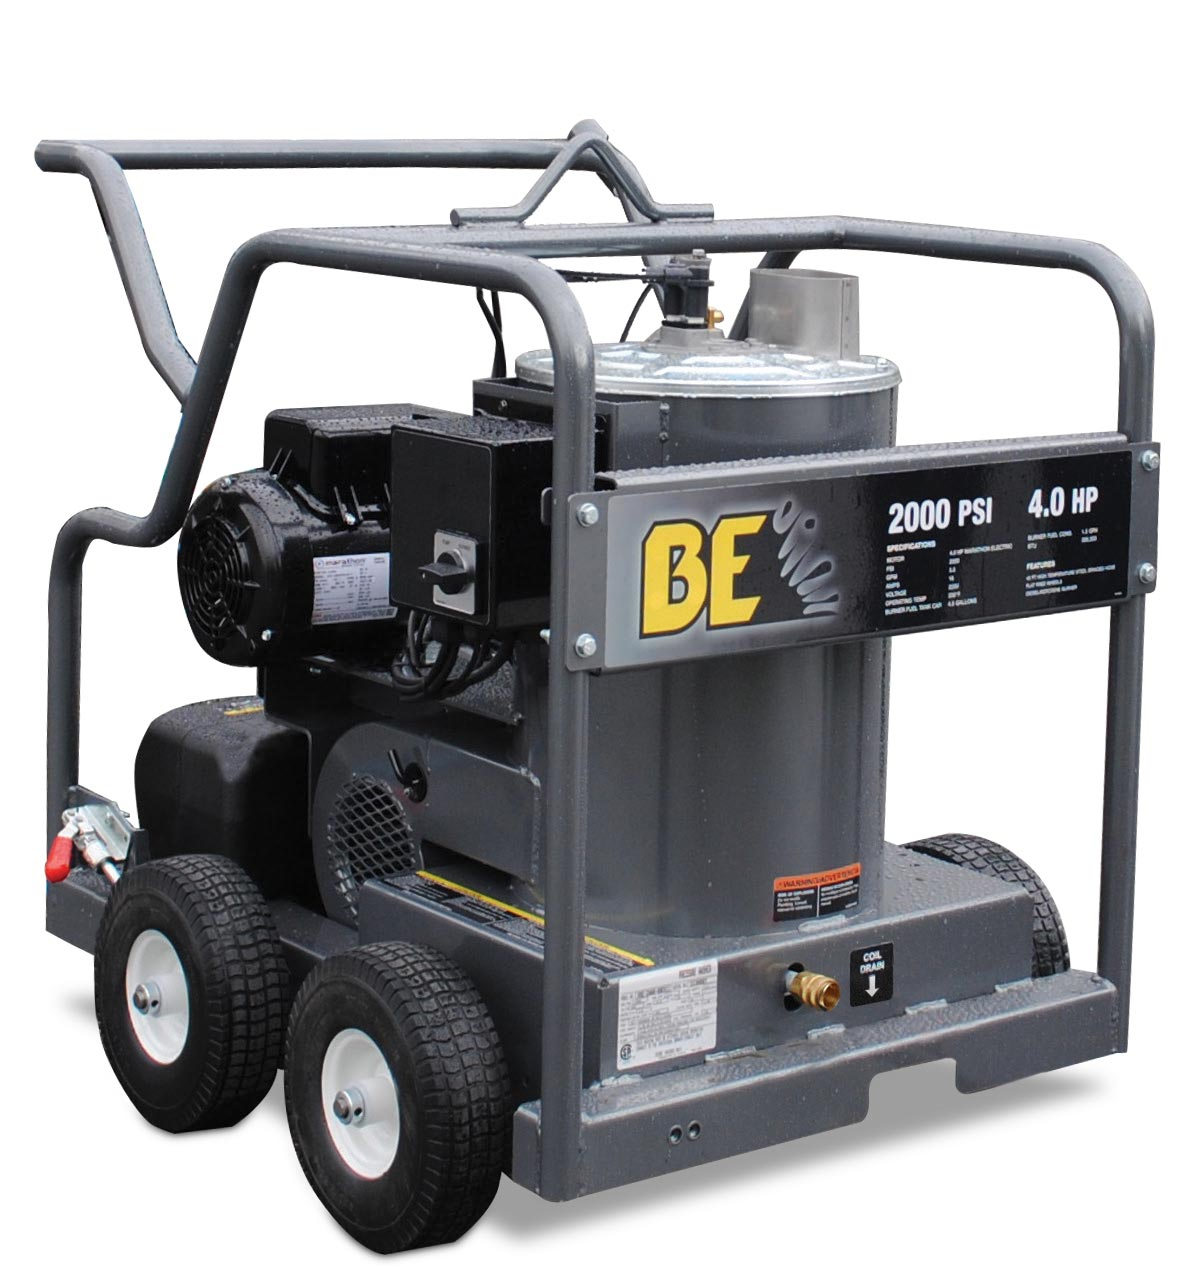 BE Pressure HW204EMD Hot Water Pressure Washer Marathon Electric Motor 2000psi 3gpm 230-240 volts Mi-T-M HSE-2003-OMG10 Limited Freight